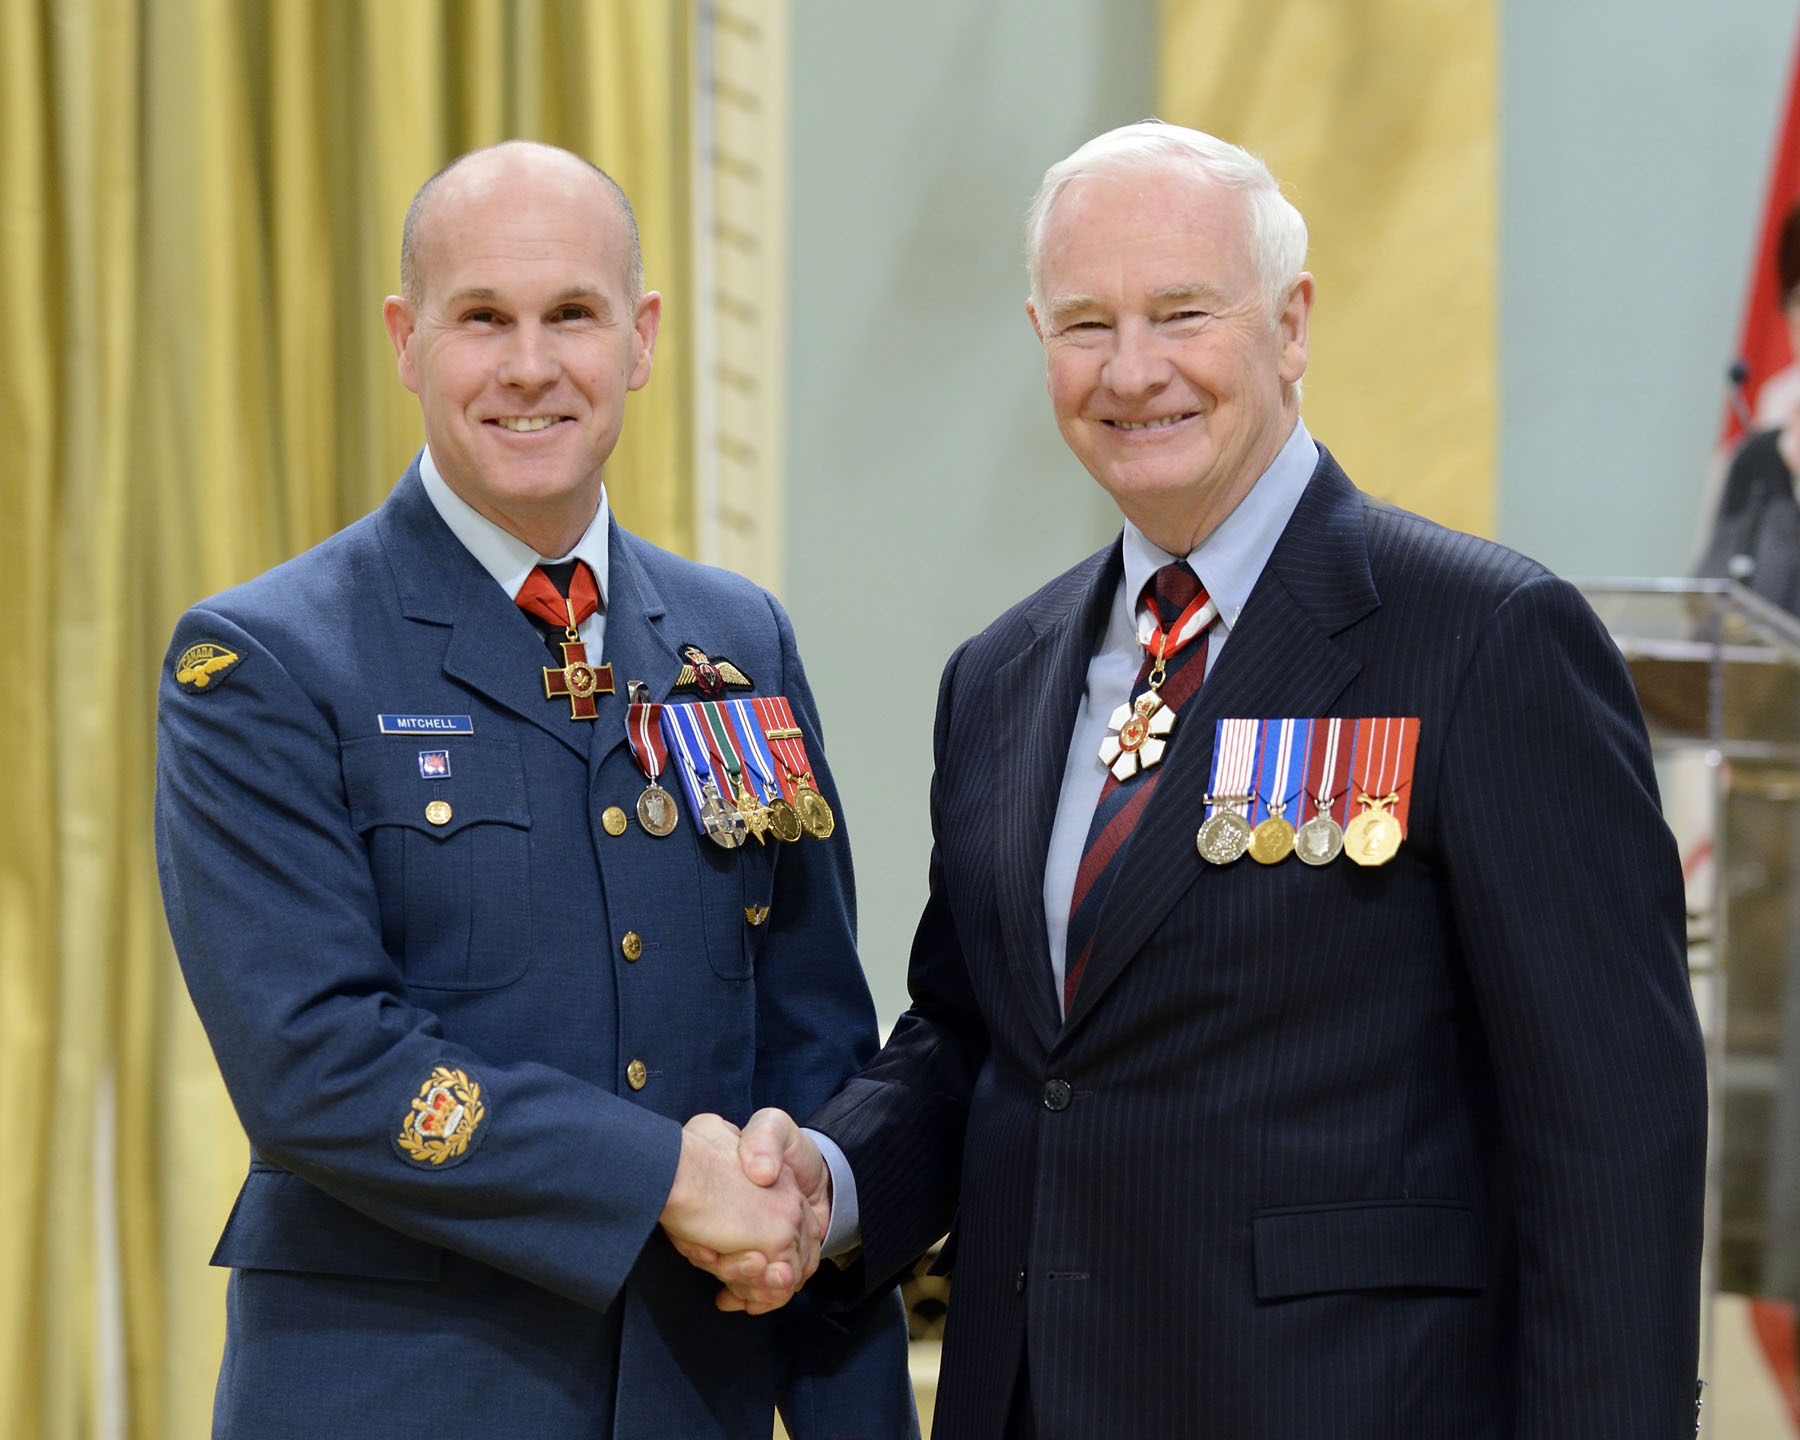 Master Warrant Officer Keith Paul Mitchell, C.V., M.S.M., C.D. (LaSalle, Quebec and Kentville, Nova Scotia), is one of only 20 Canadians to have been awarded the Cross of Valour, Canada's highest decoration for bravery. The search and rescue technician jumped into freezing Arctic waters to provide aid to a critically ill fisherman onboard a ship.